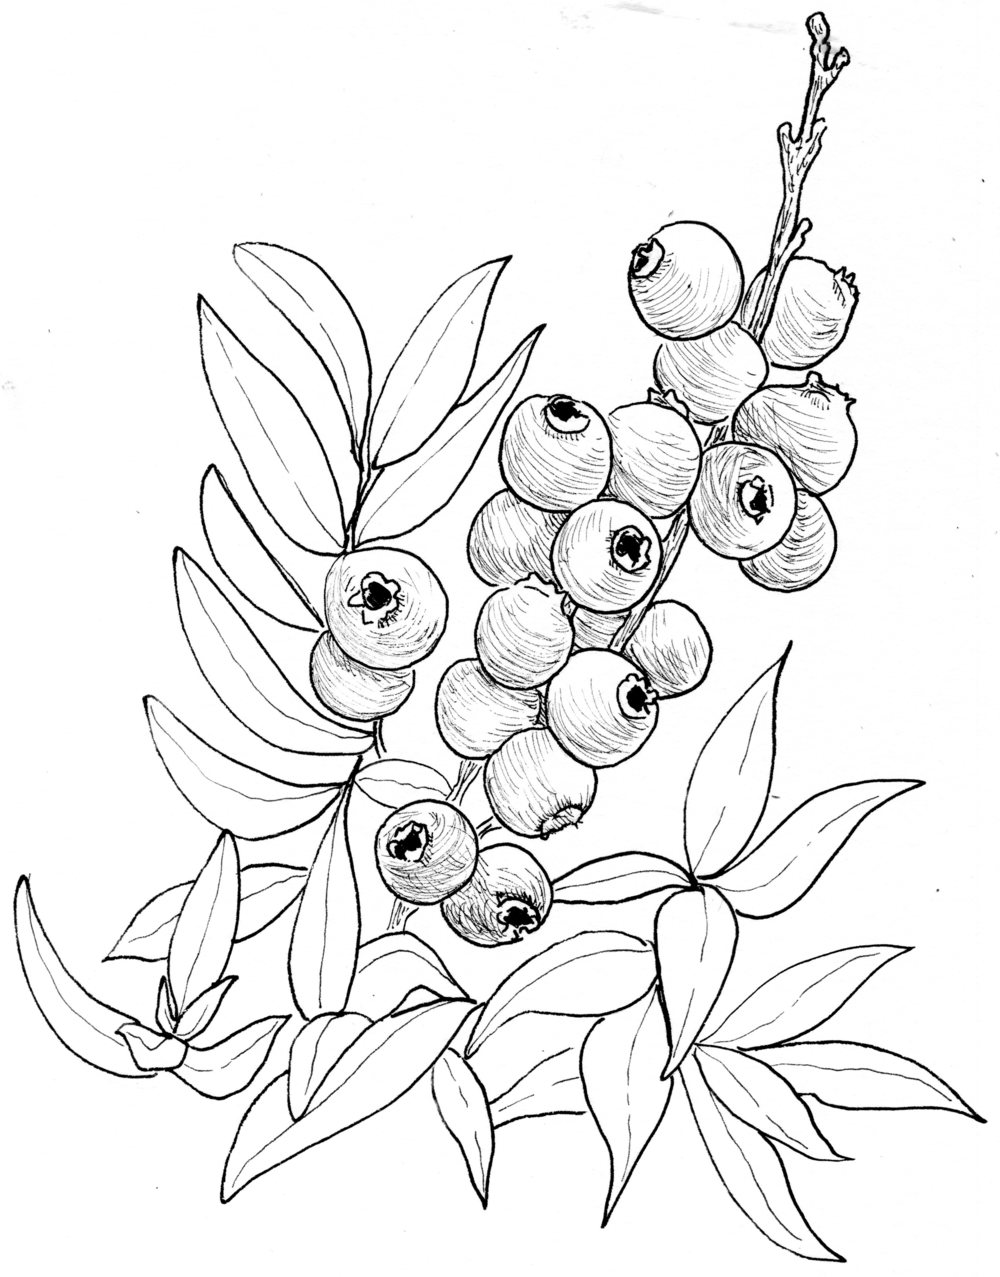 Blueberry clipart blueberry plant. Image result for drawings